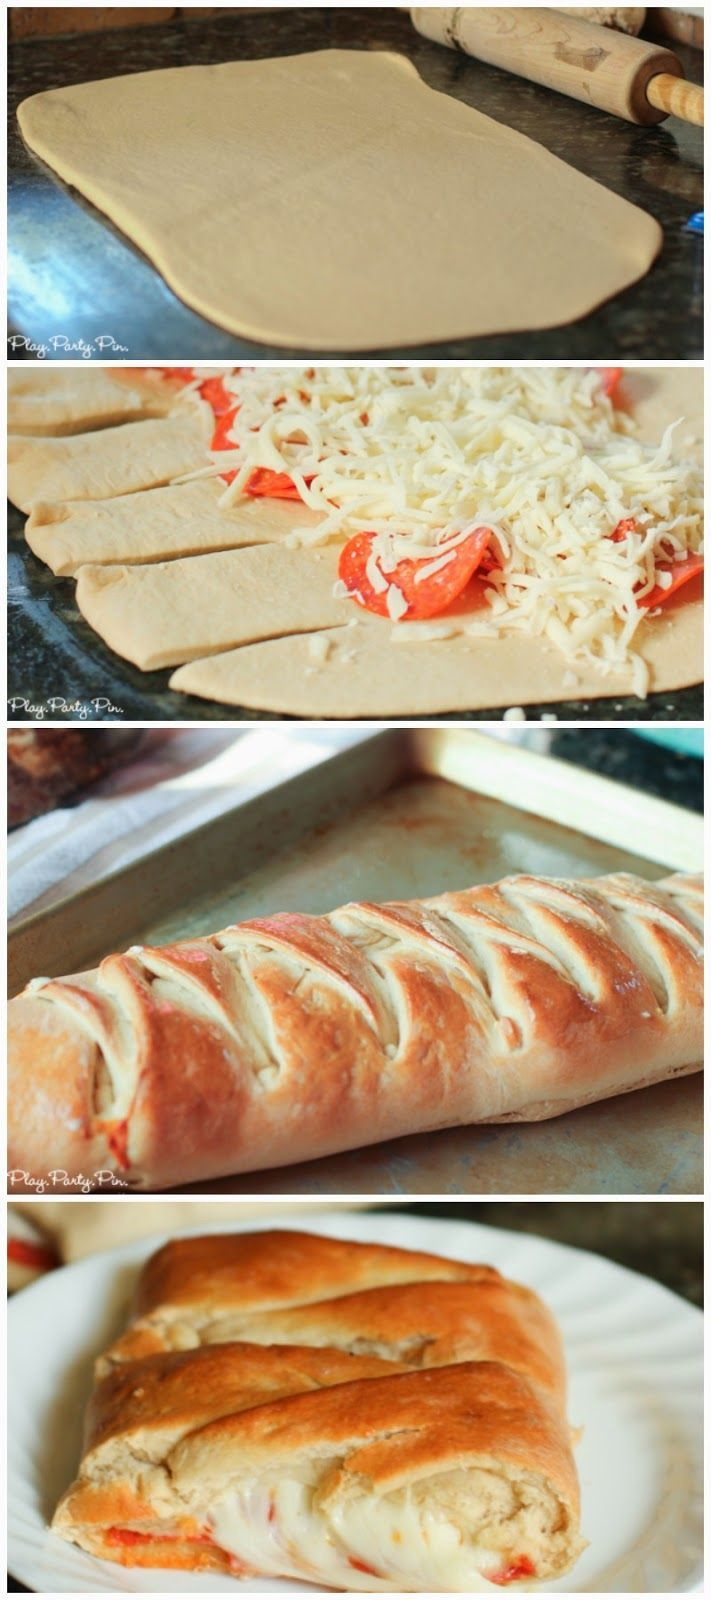 Pizza loaf recipe, perfect with pizza or sandwich toppingsPizza Loaf, Favorite Tops, Food, Sandwiches Tops, Pizza Recipes, Easy Yummy Pizza, Pizza Rolls, Pizza Dough, Loaf Recipe